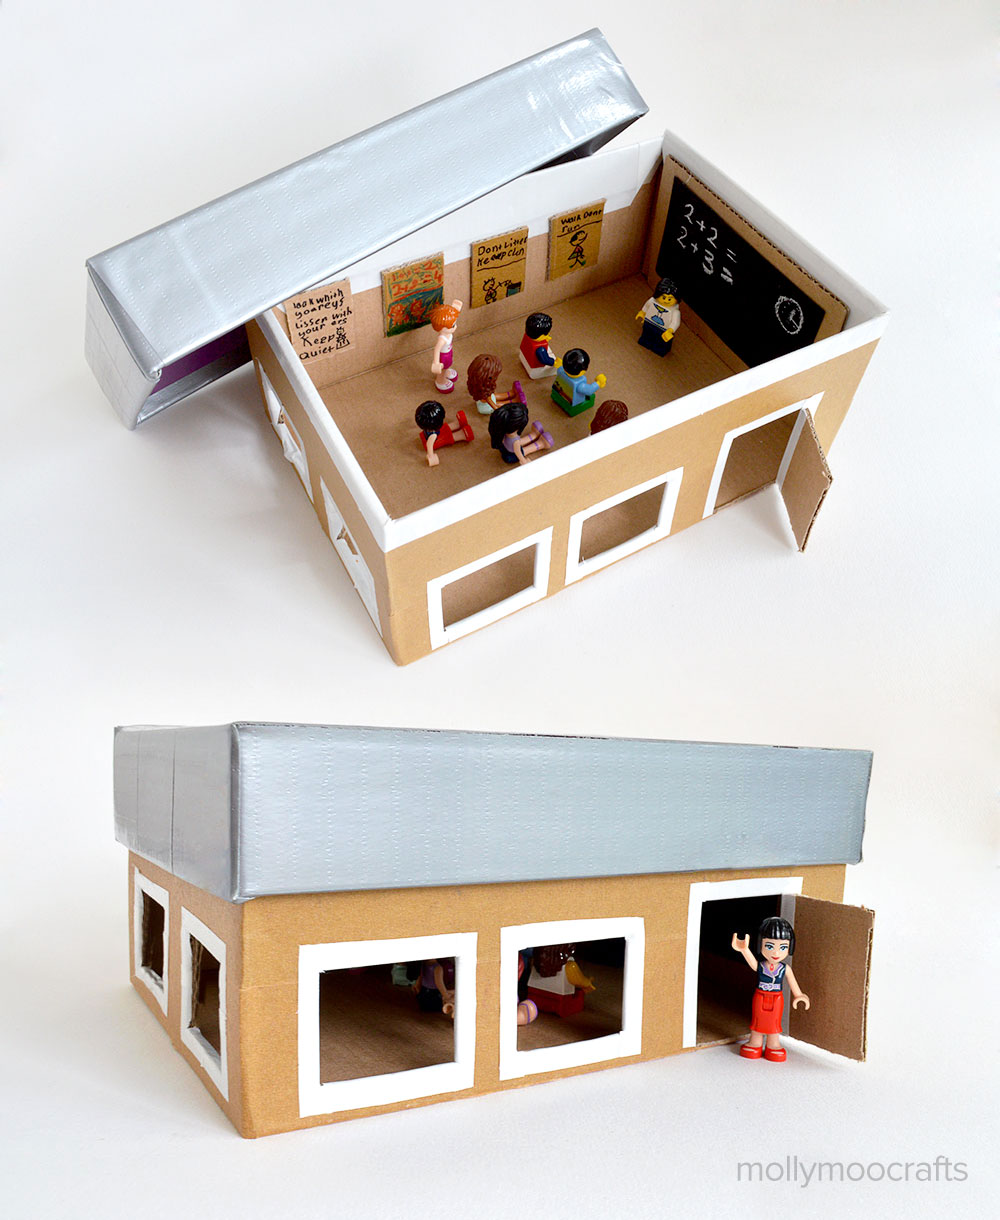 shoebox-school-craft-kids